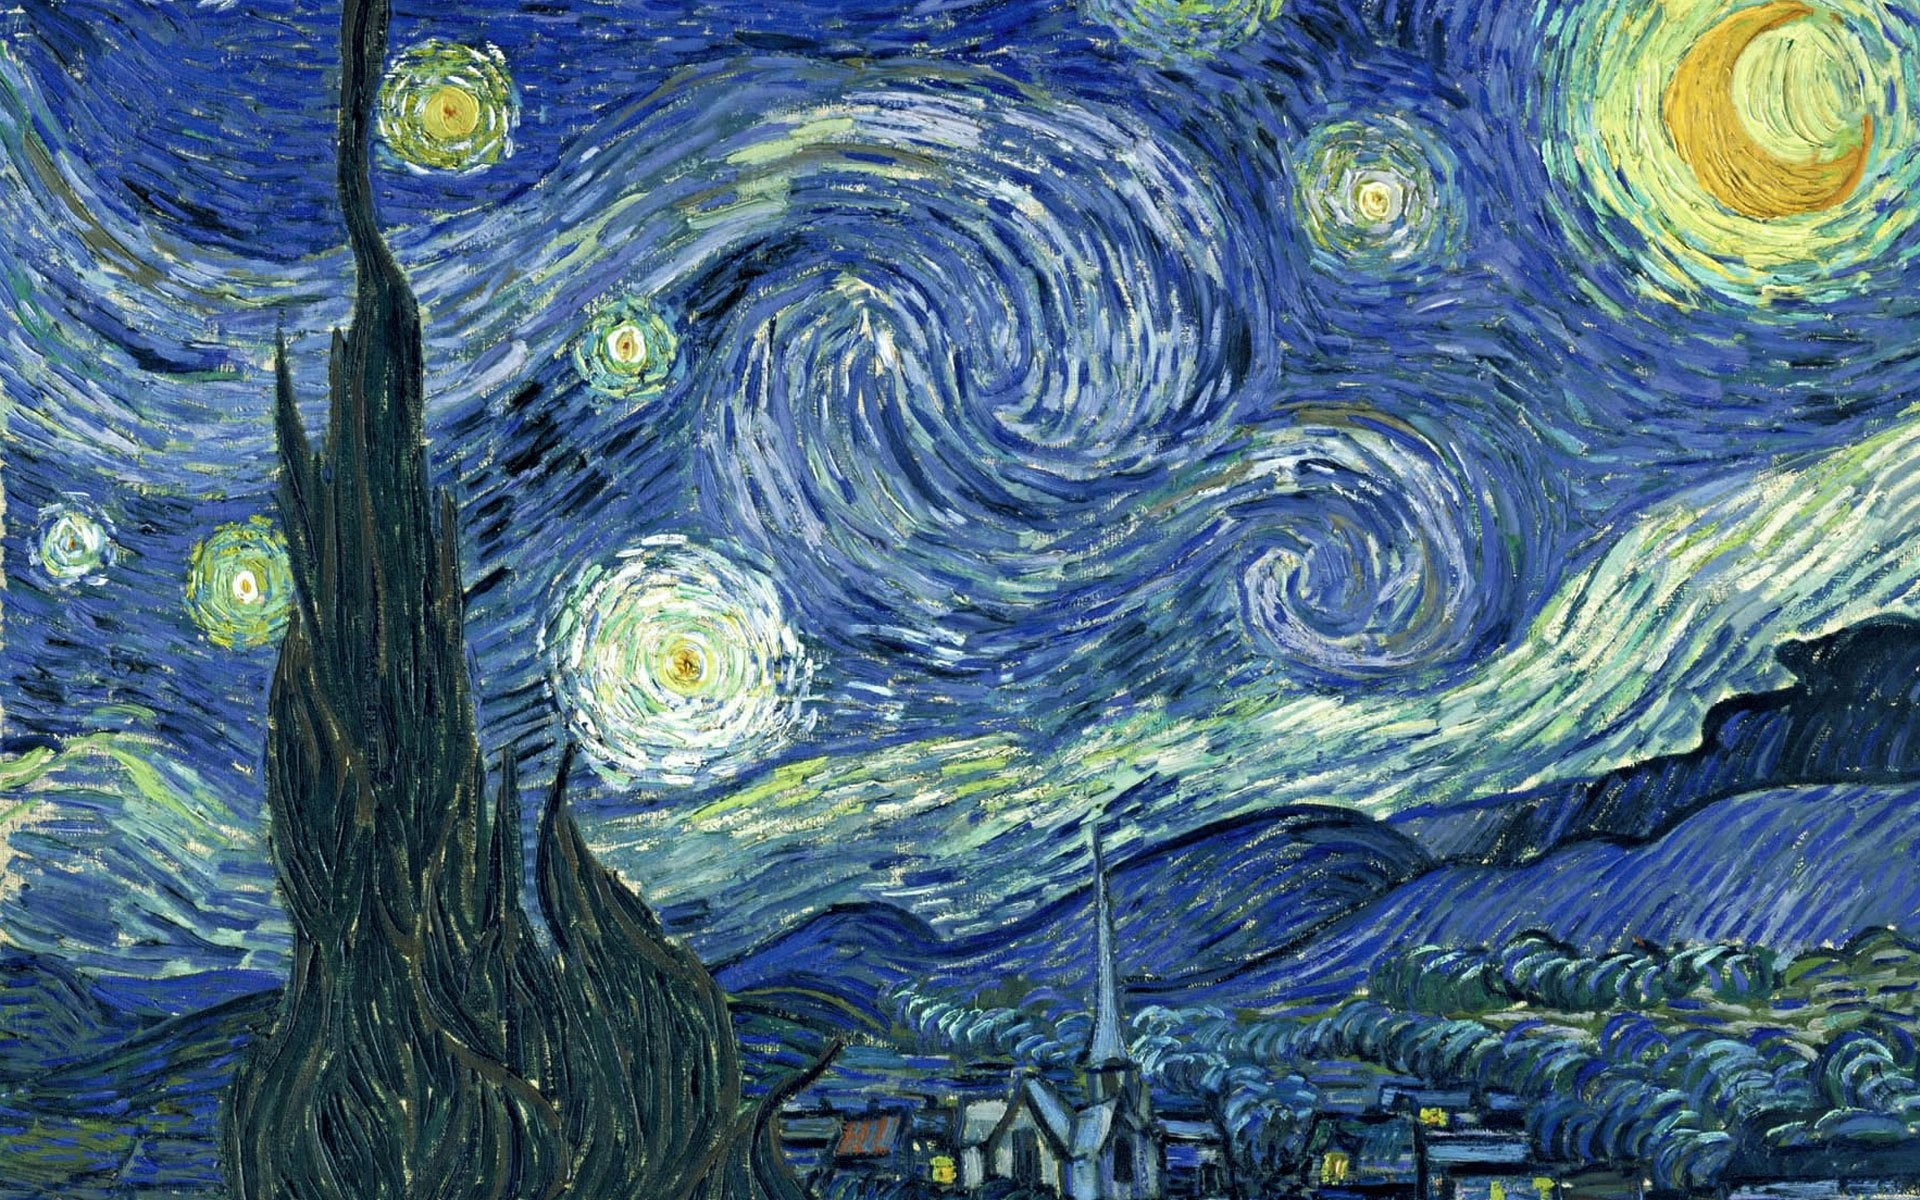 1920x1200 Wallpaper Vincent Van Gogh Starry Night